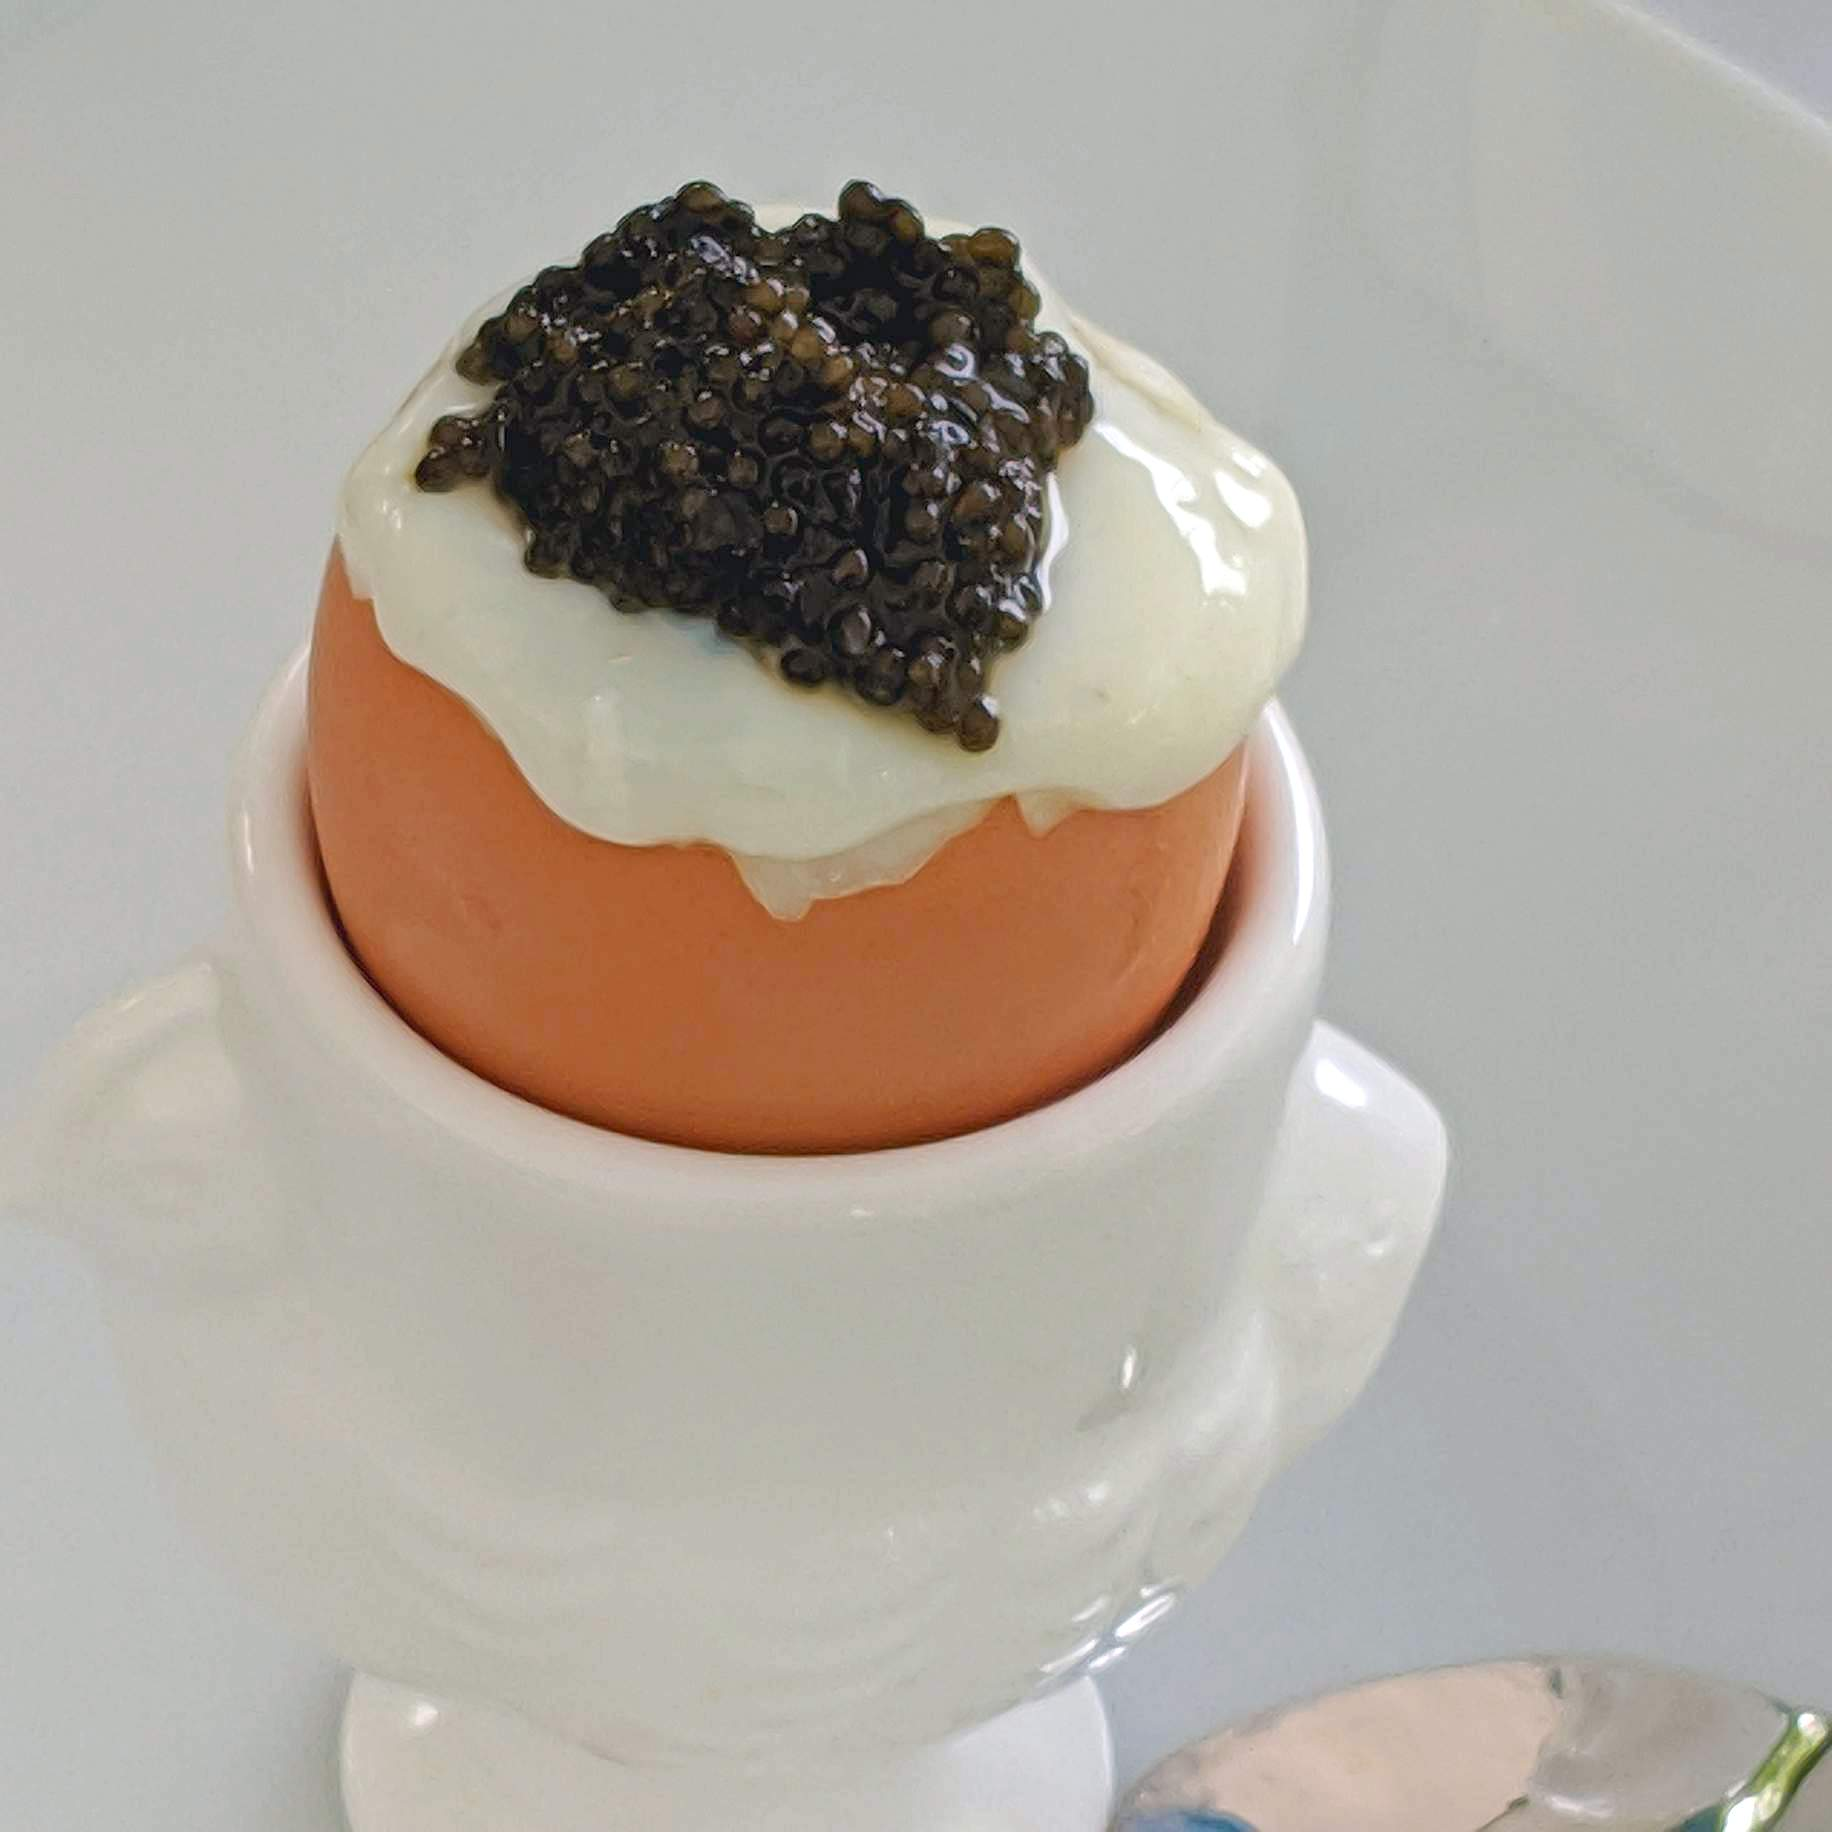 Nothing like caviar and boiled egg